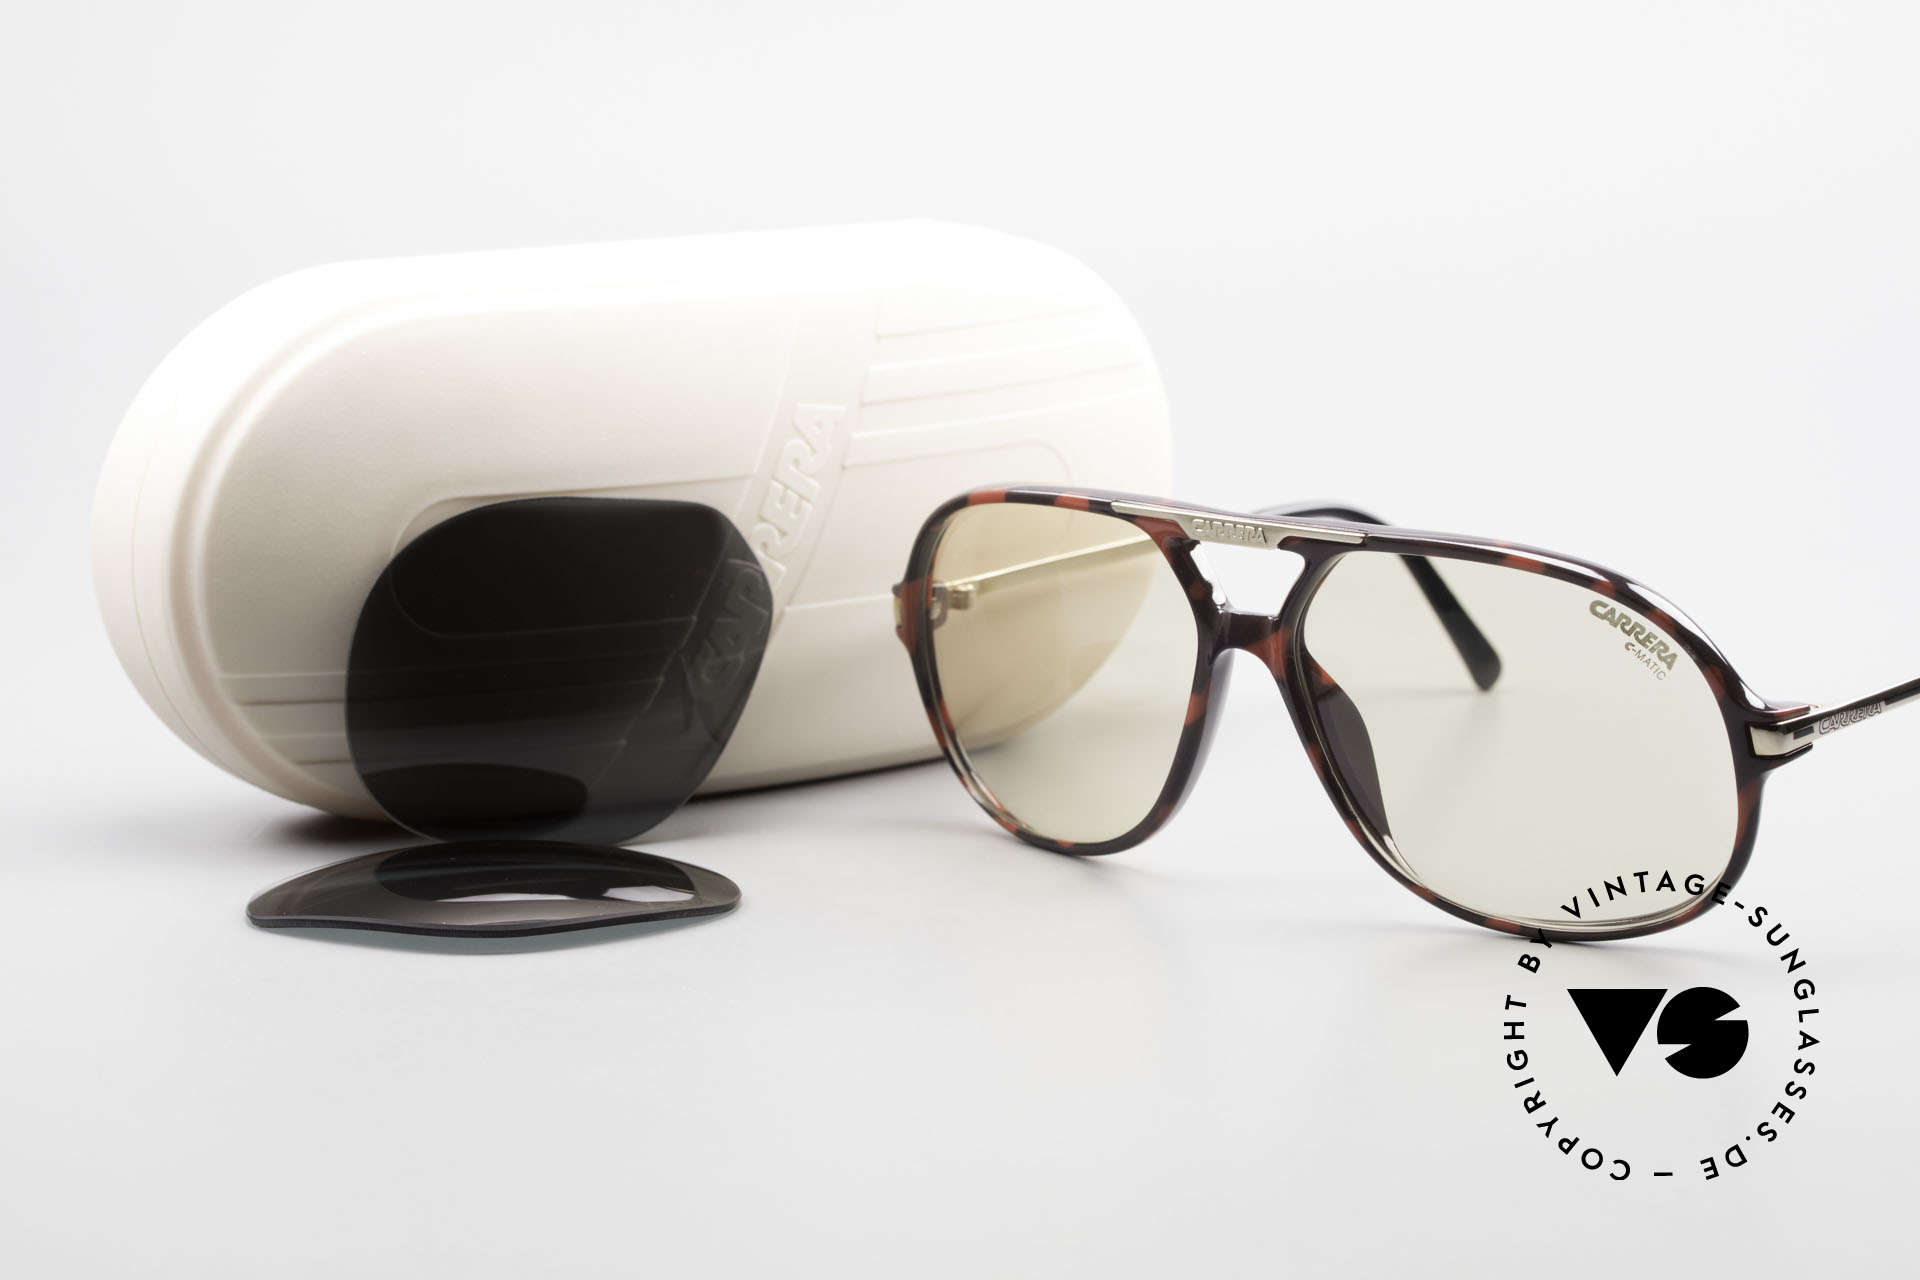 Carrera 5411 C-Matic Photochromic Automatic Lens, NO RETRO sunglasses, but a 30 years old ORIGINAL!, Made for Men